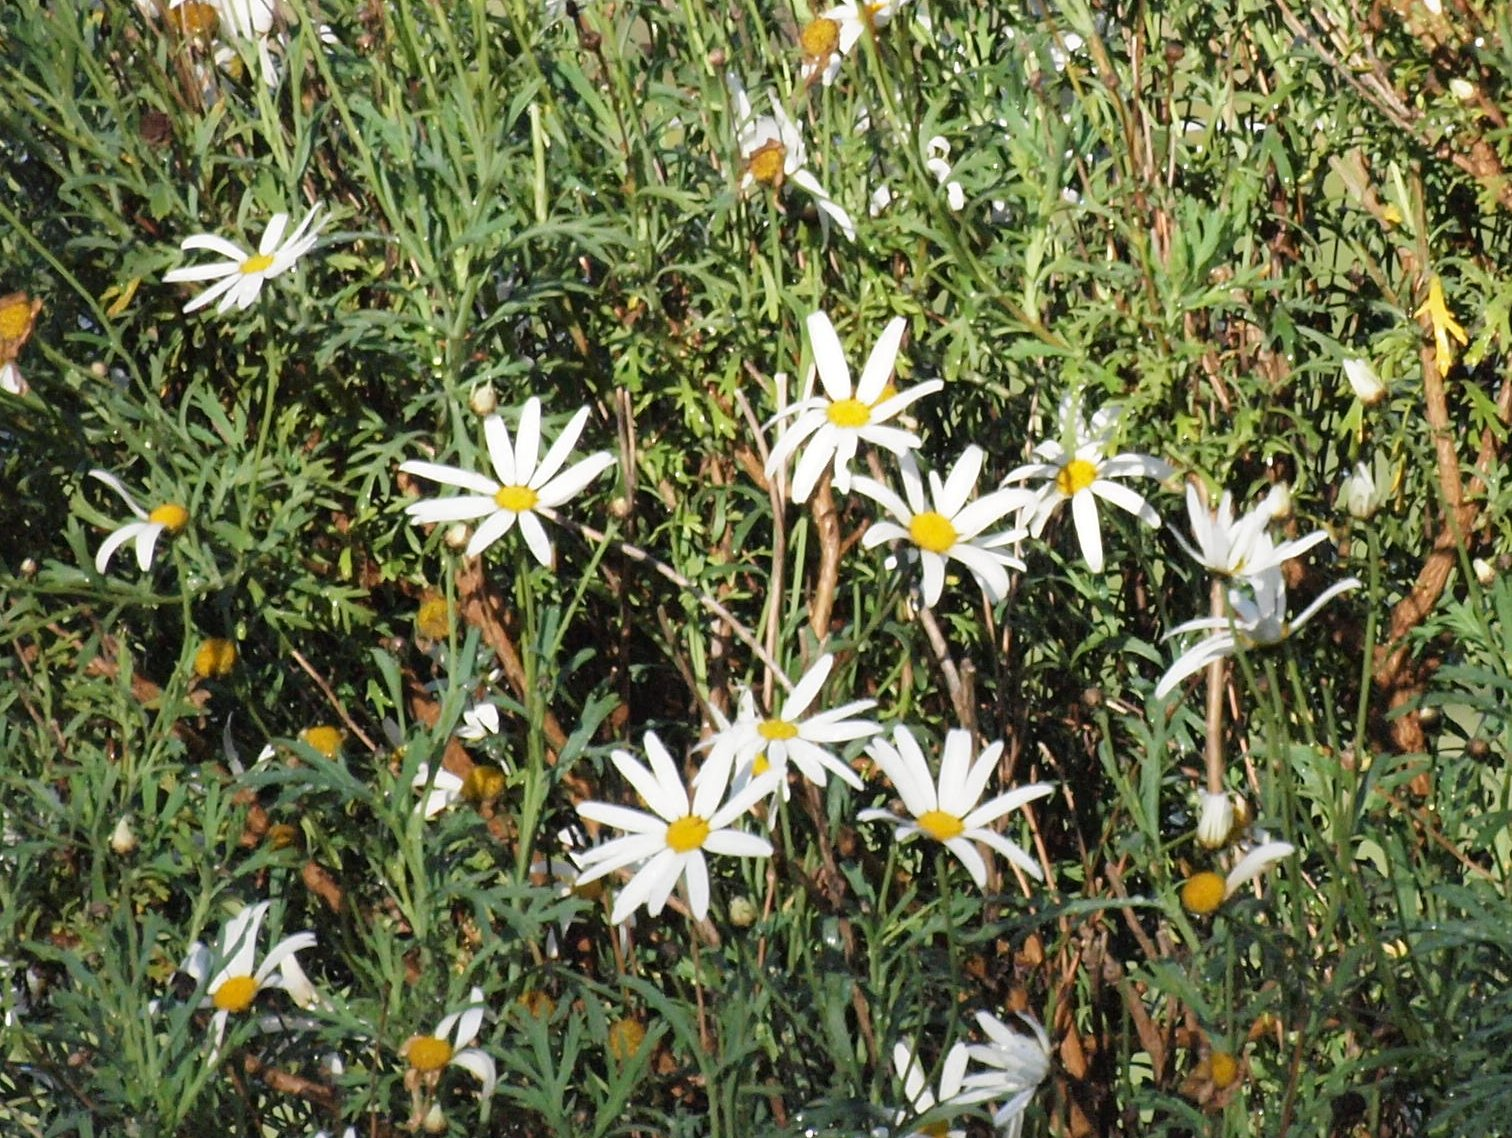 This should be Olympus-daisies-detail.jpeg.  Is it missing?